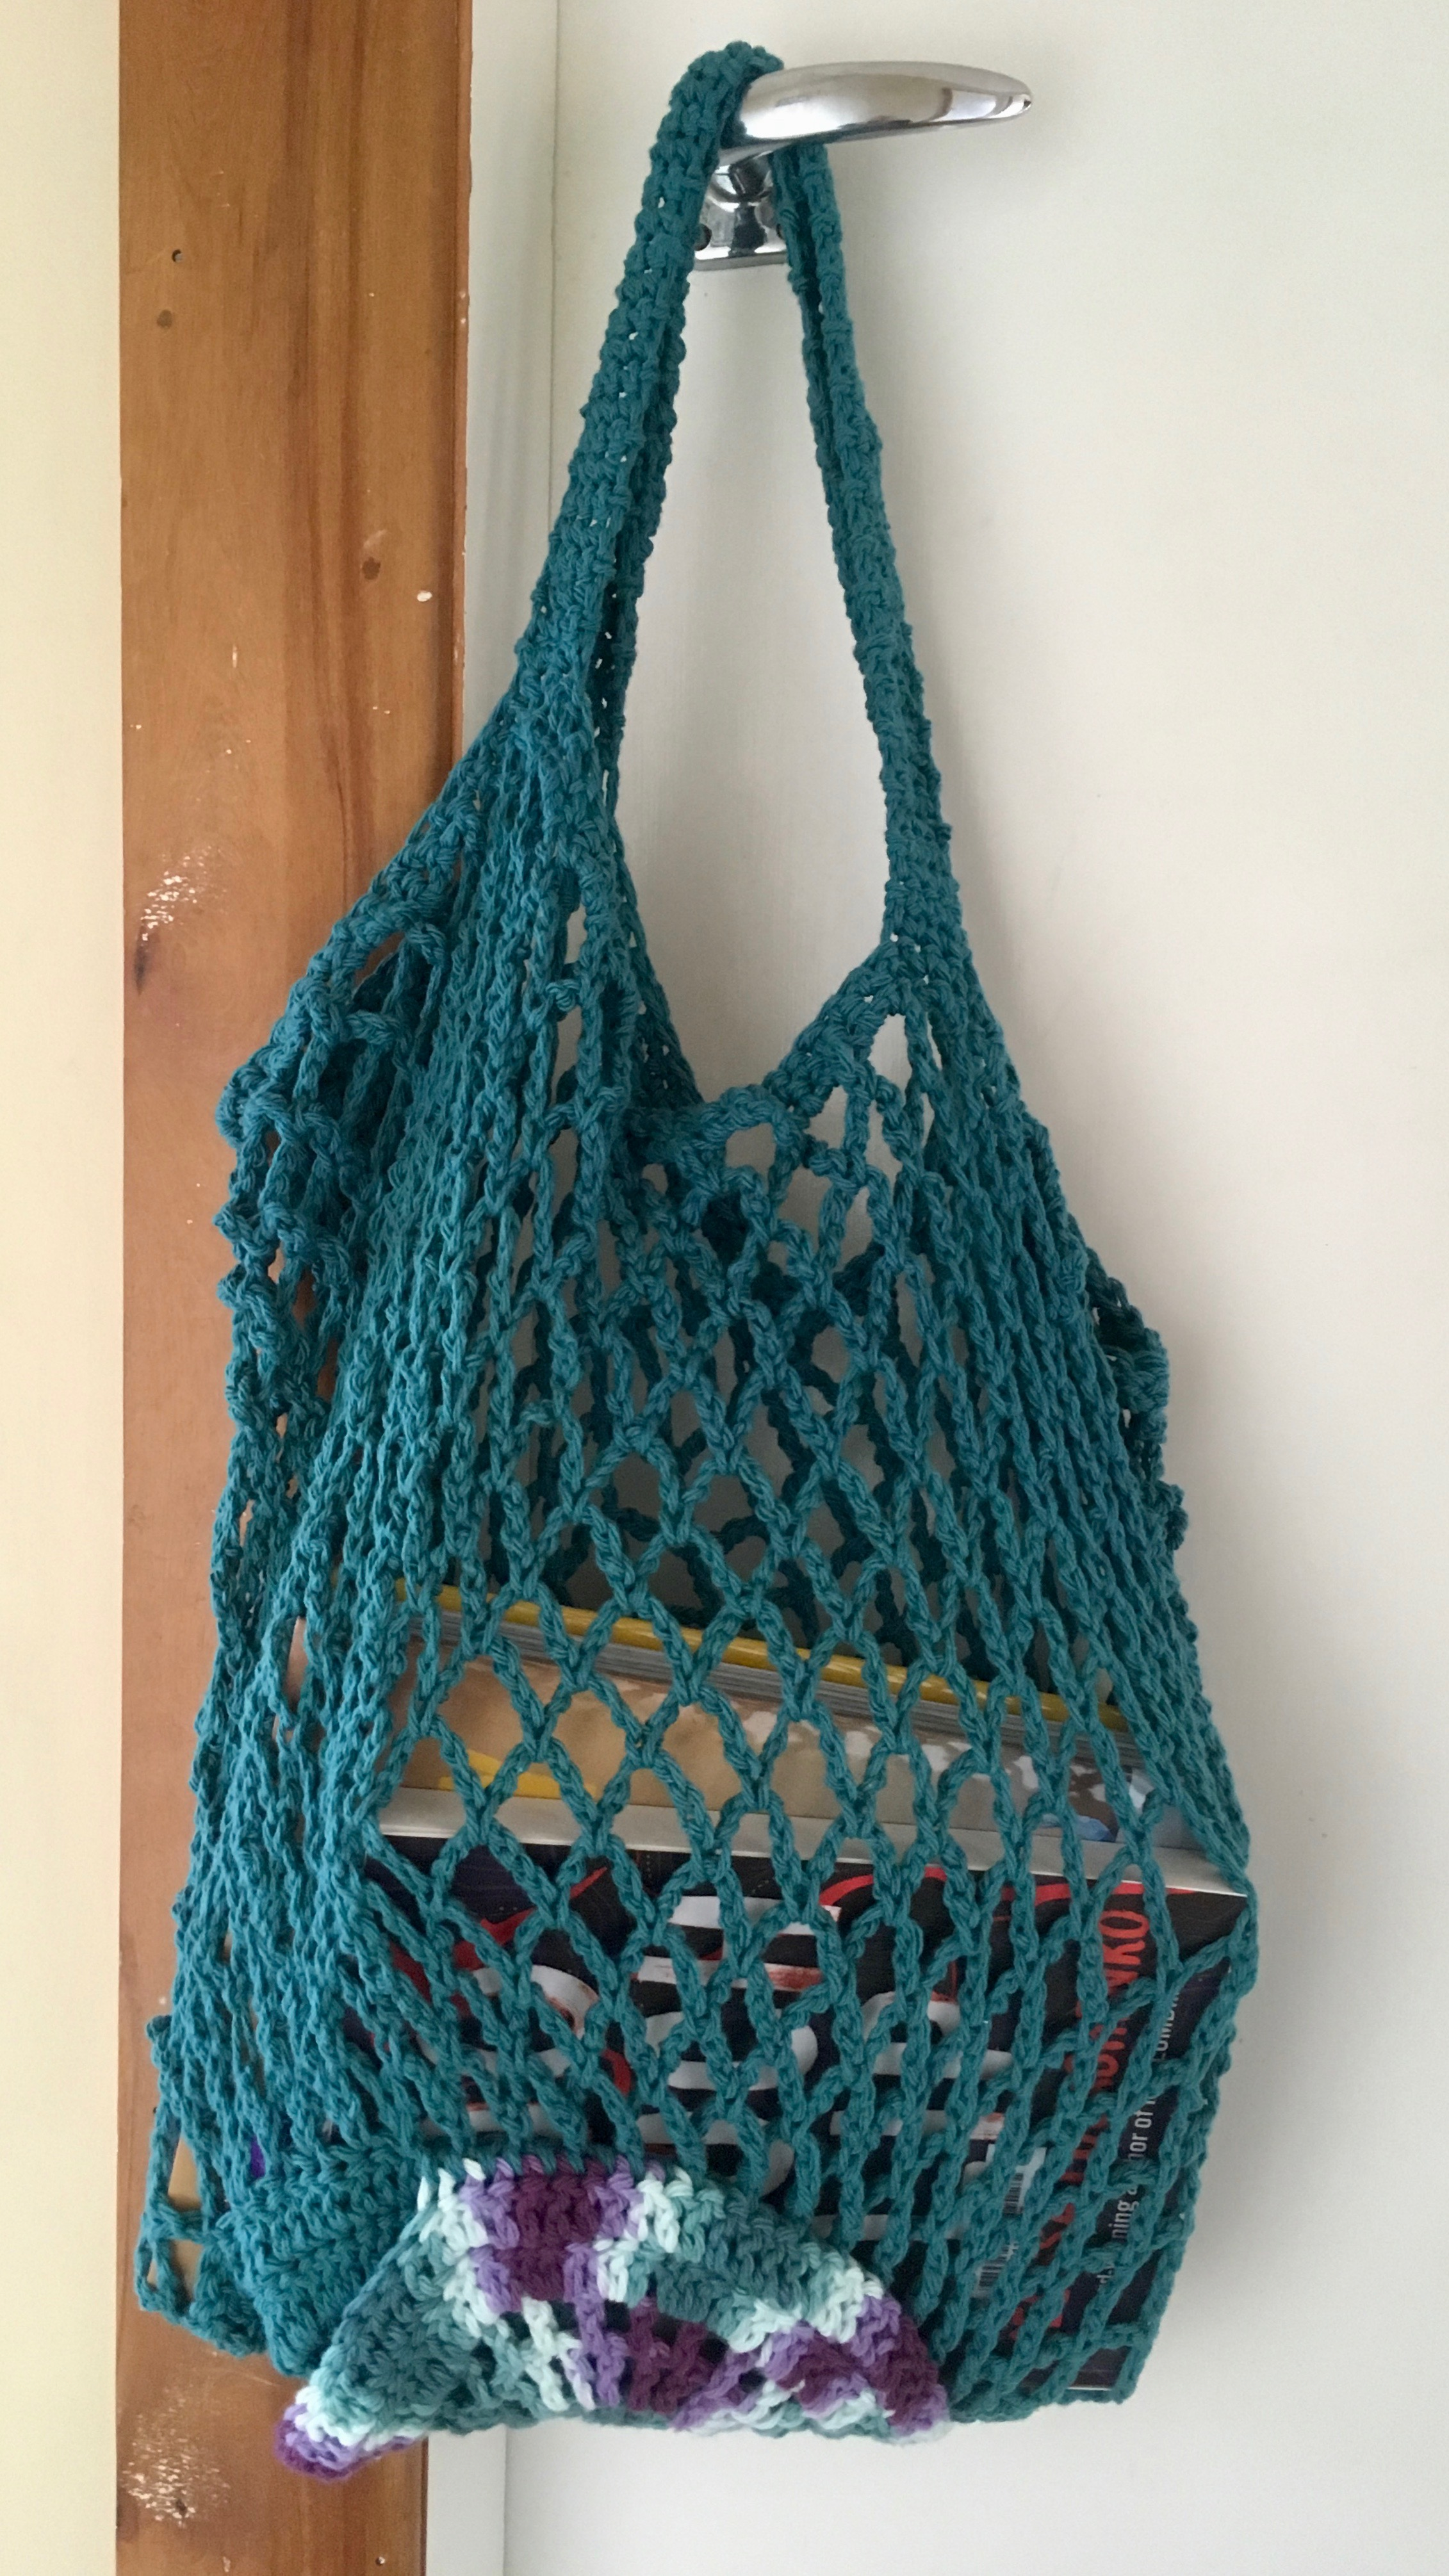 I made it myself: Eco String Bag pattern from Crochet Coach membership service